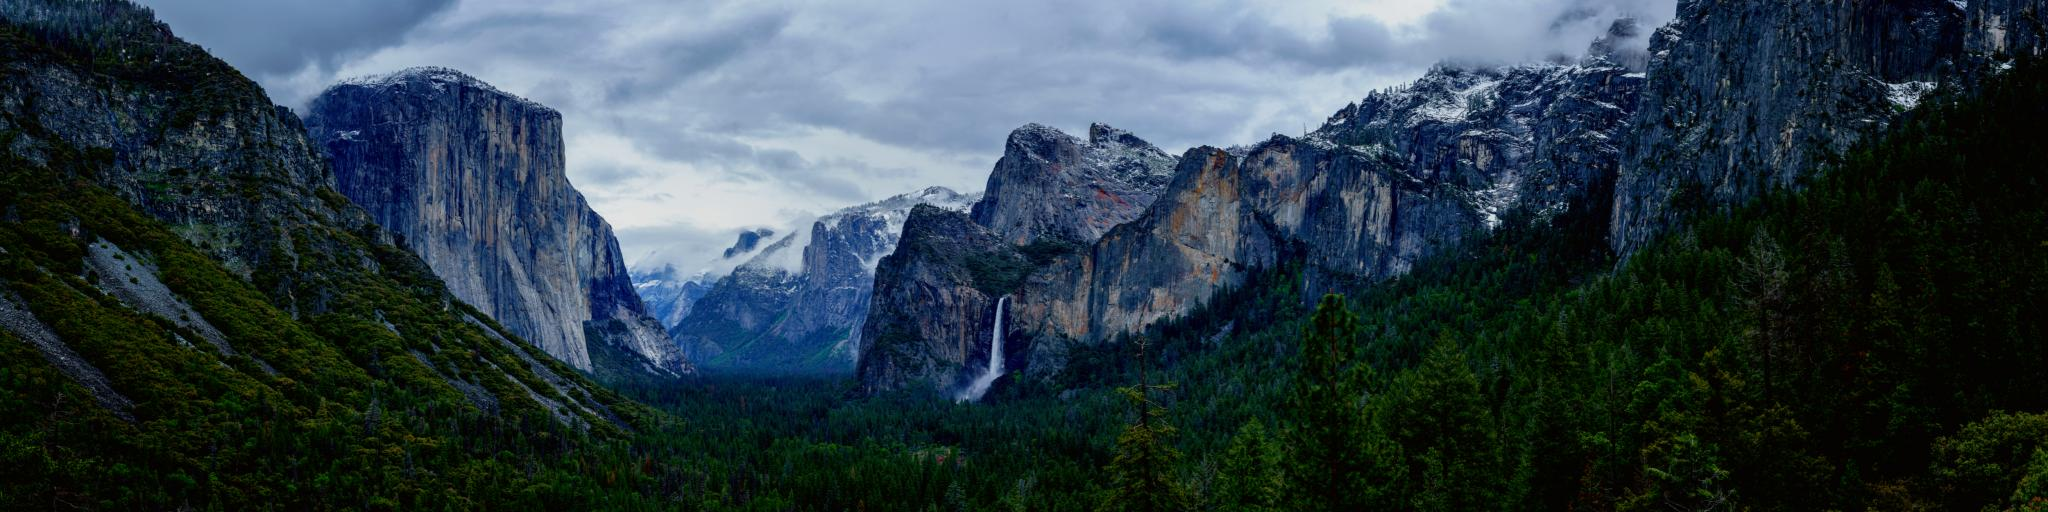 A breathtaking view of Rock formations, waterfall, and pine trees in Yosemite National Park on a gloomy afternoon